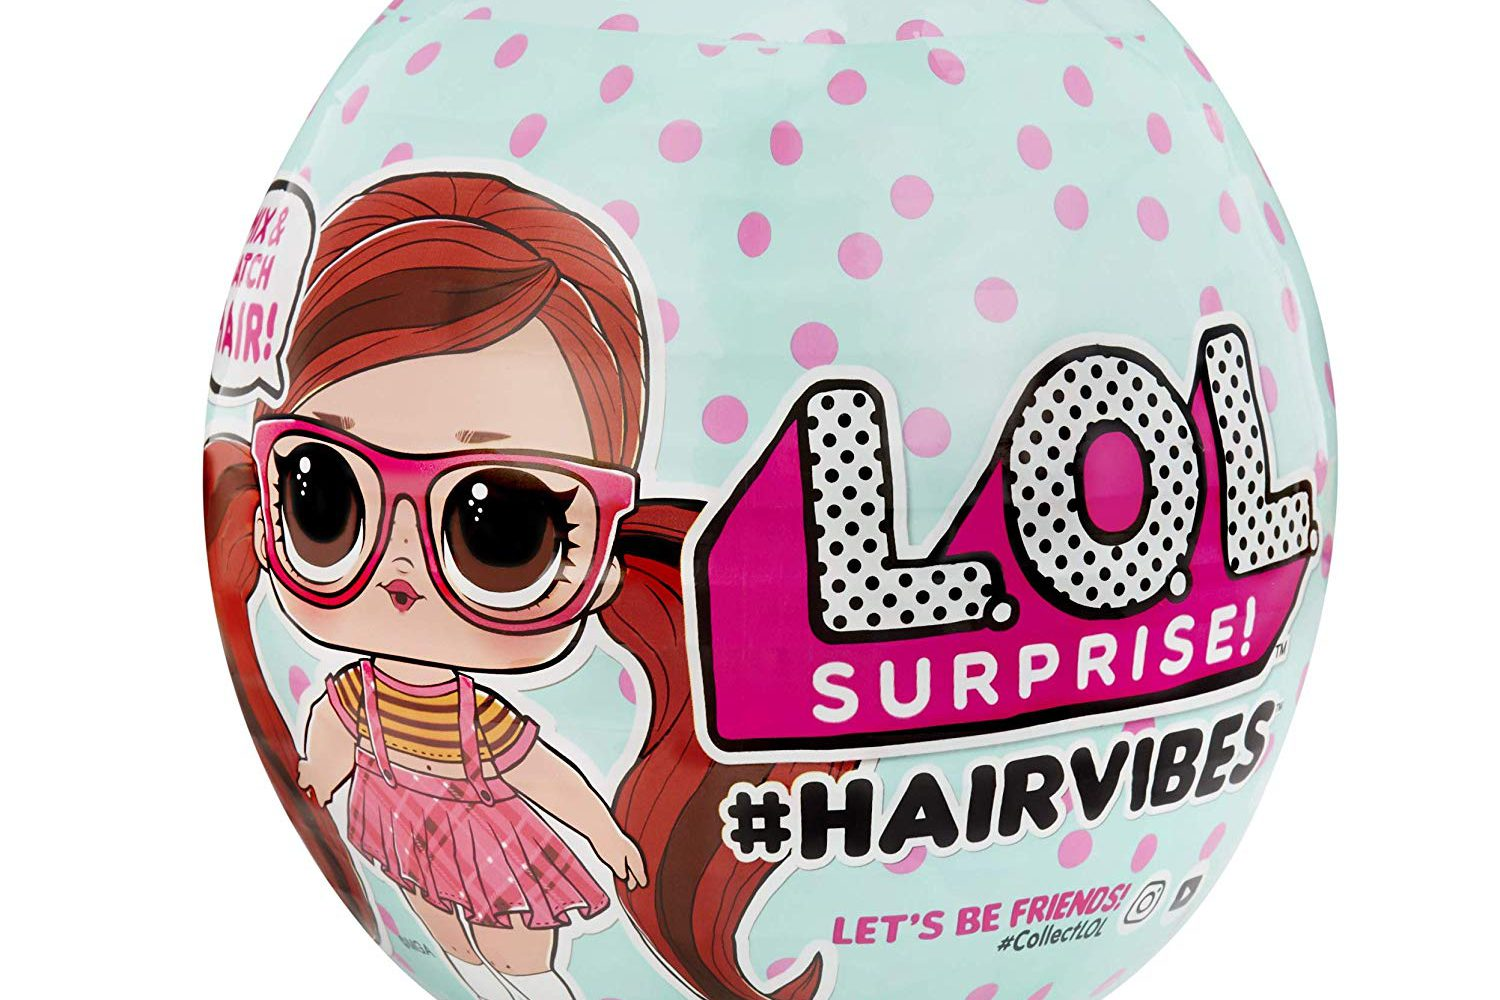 L.O.L. Surprise! #Hairvibes Dolls is out preorder now